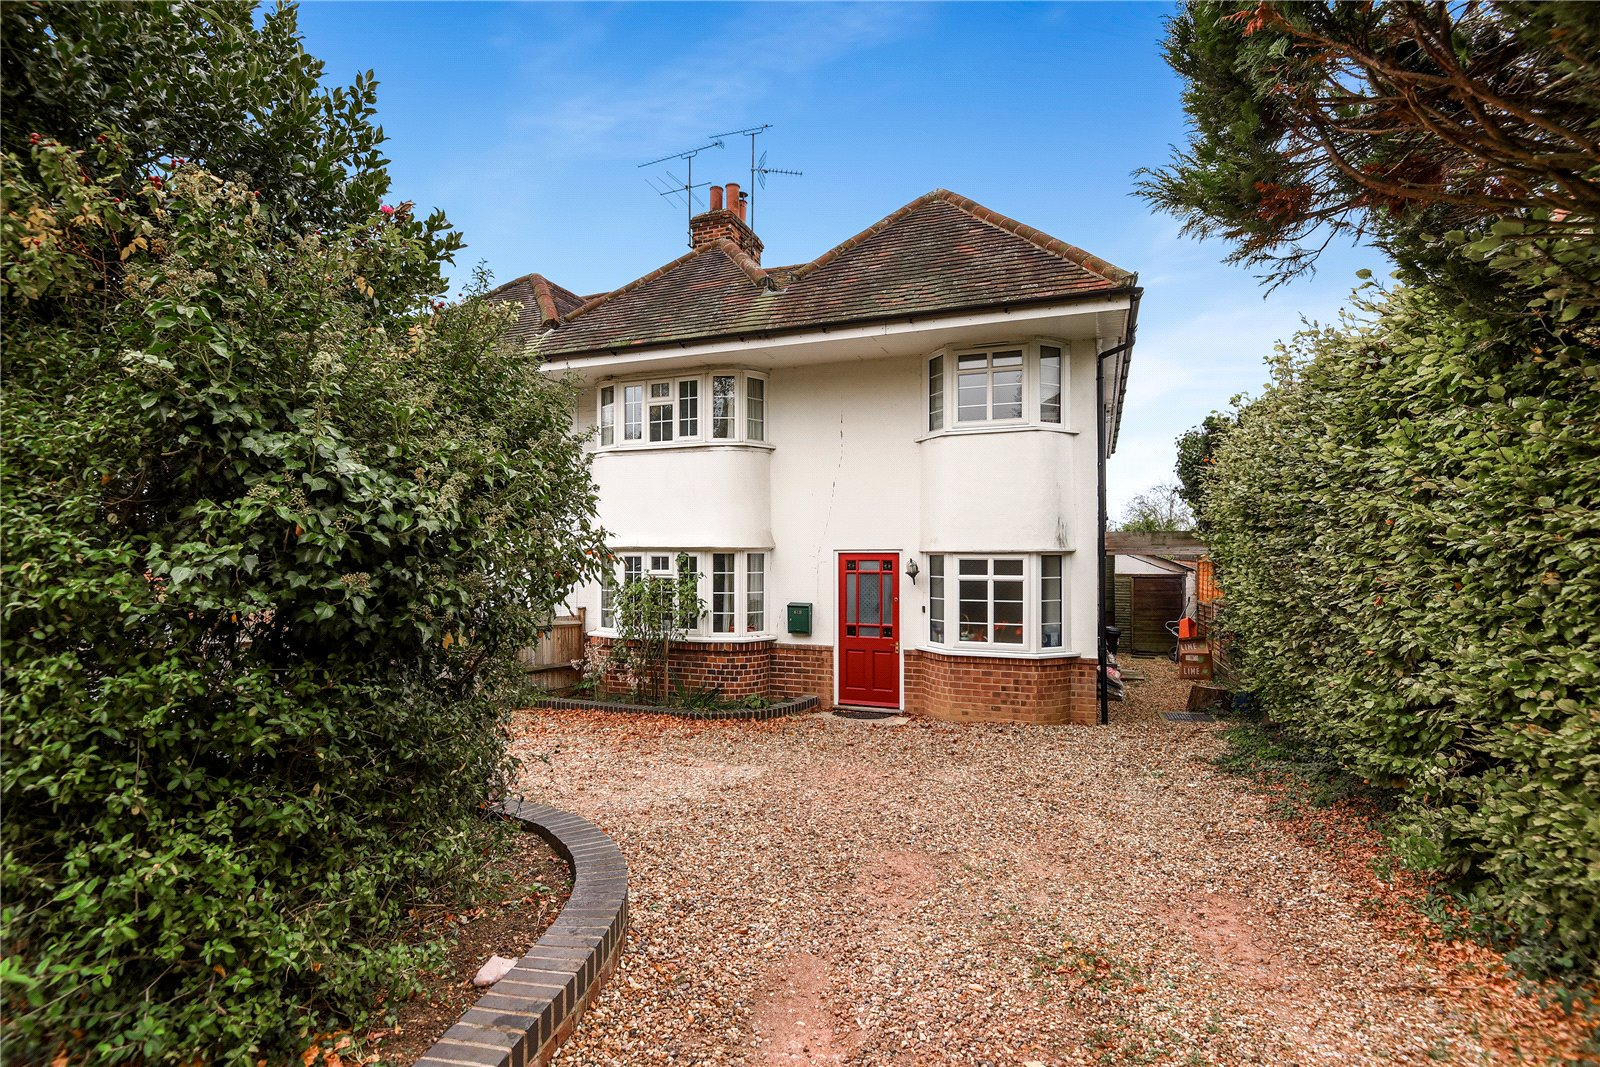 4 Bedrooms Semi Detached House for sale in Wokingham Road, Earley, Reading, Berkshire, RG6